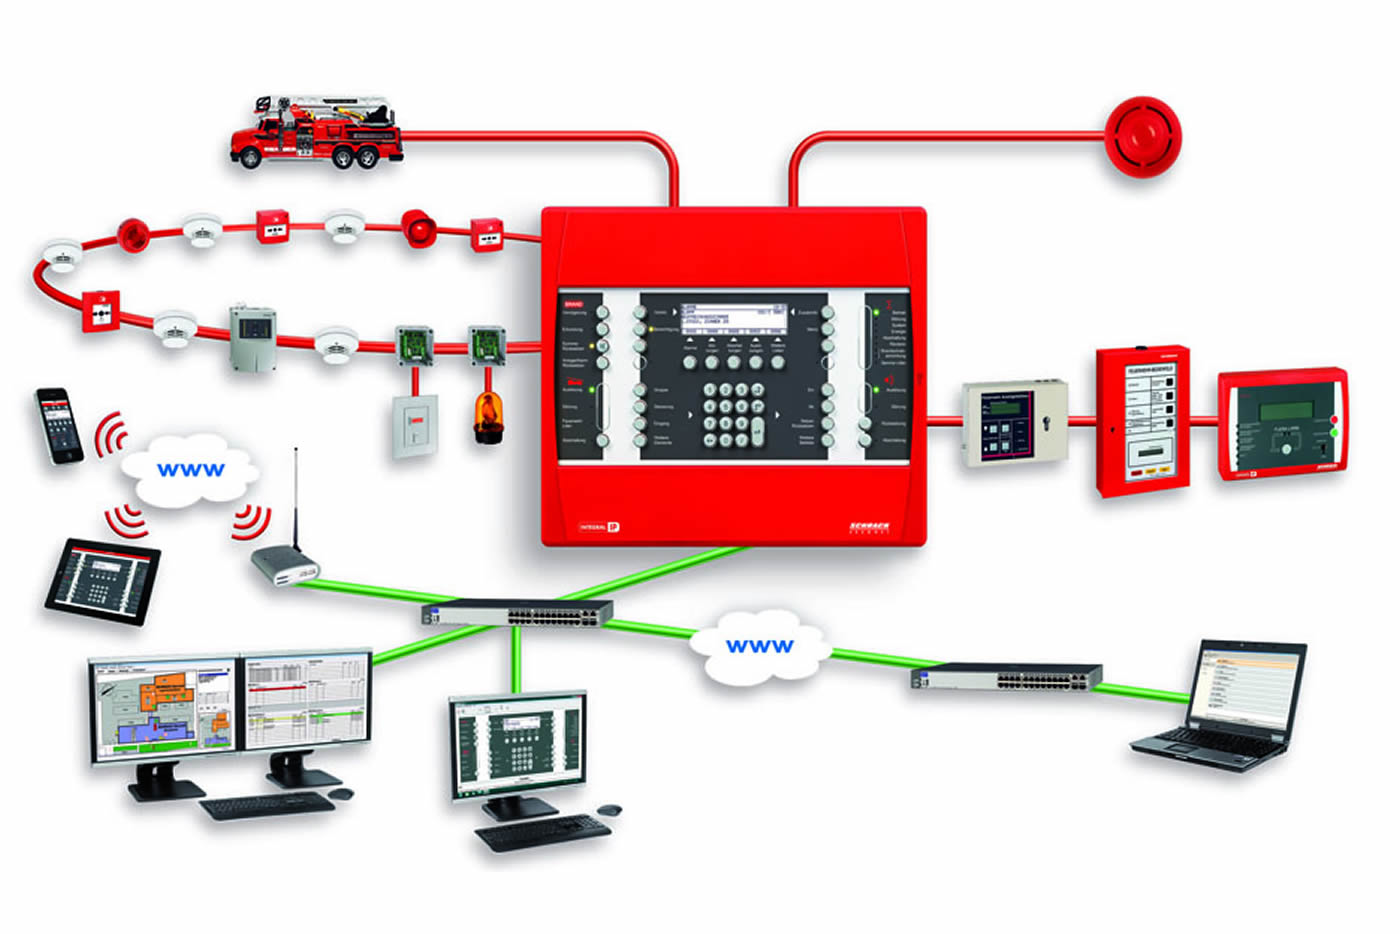 UL , EN and VDS approved Fire Alarm Panels by Schrack, Honeywell ...